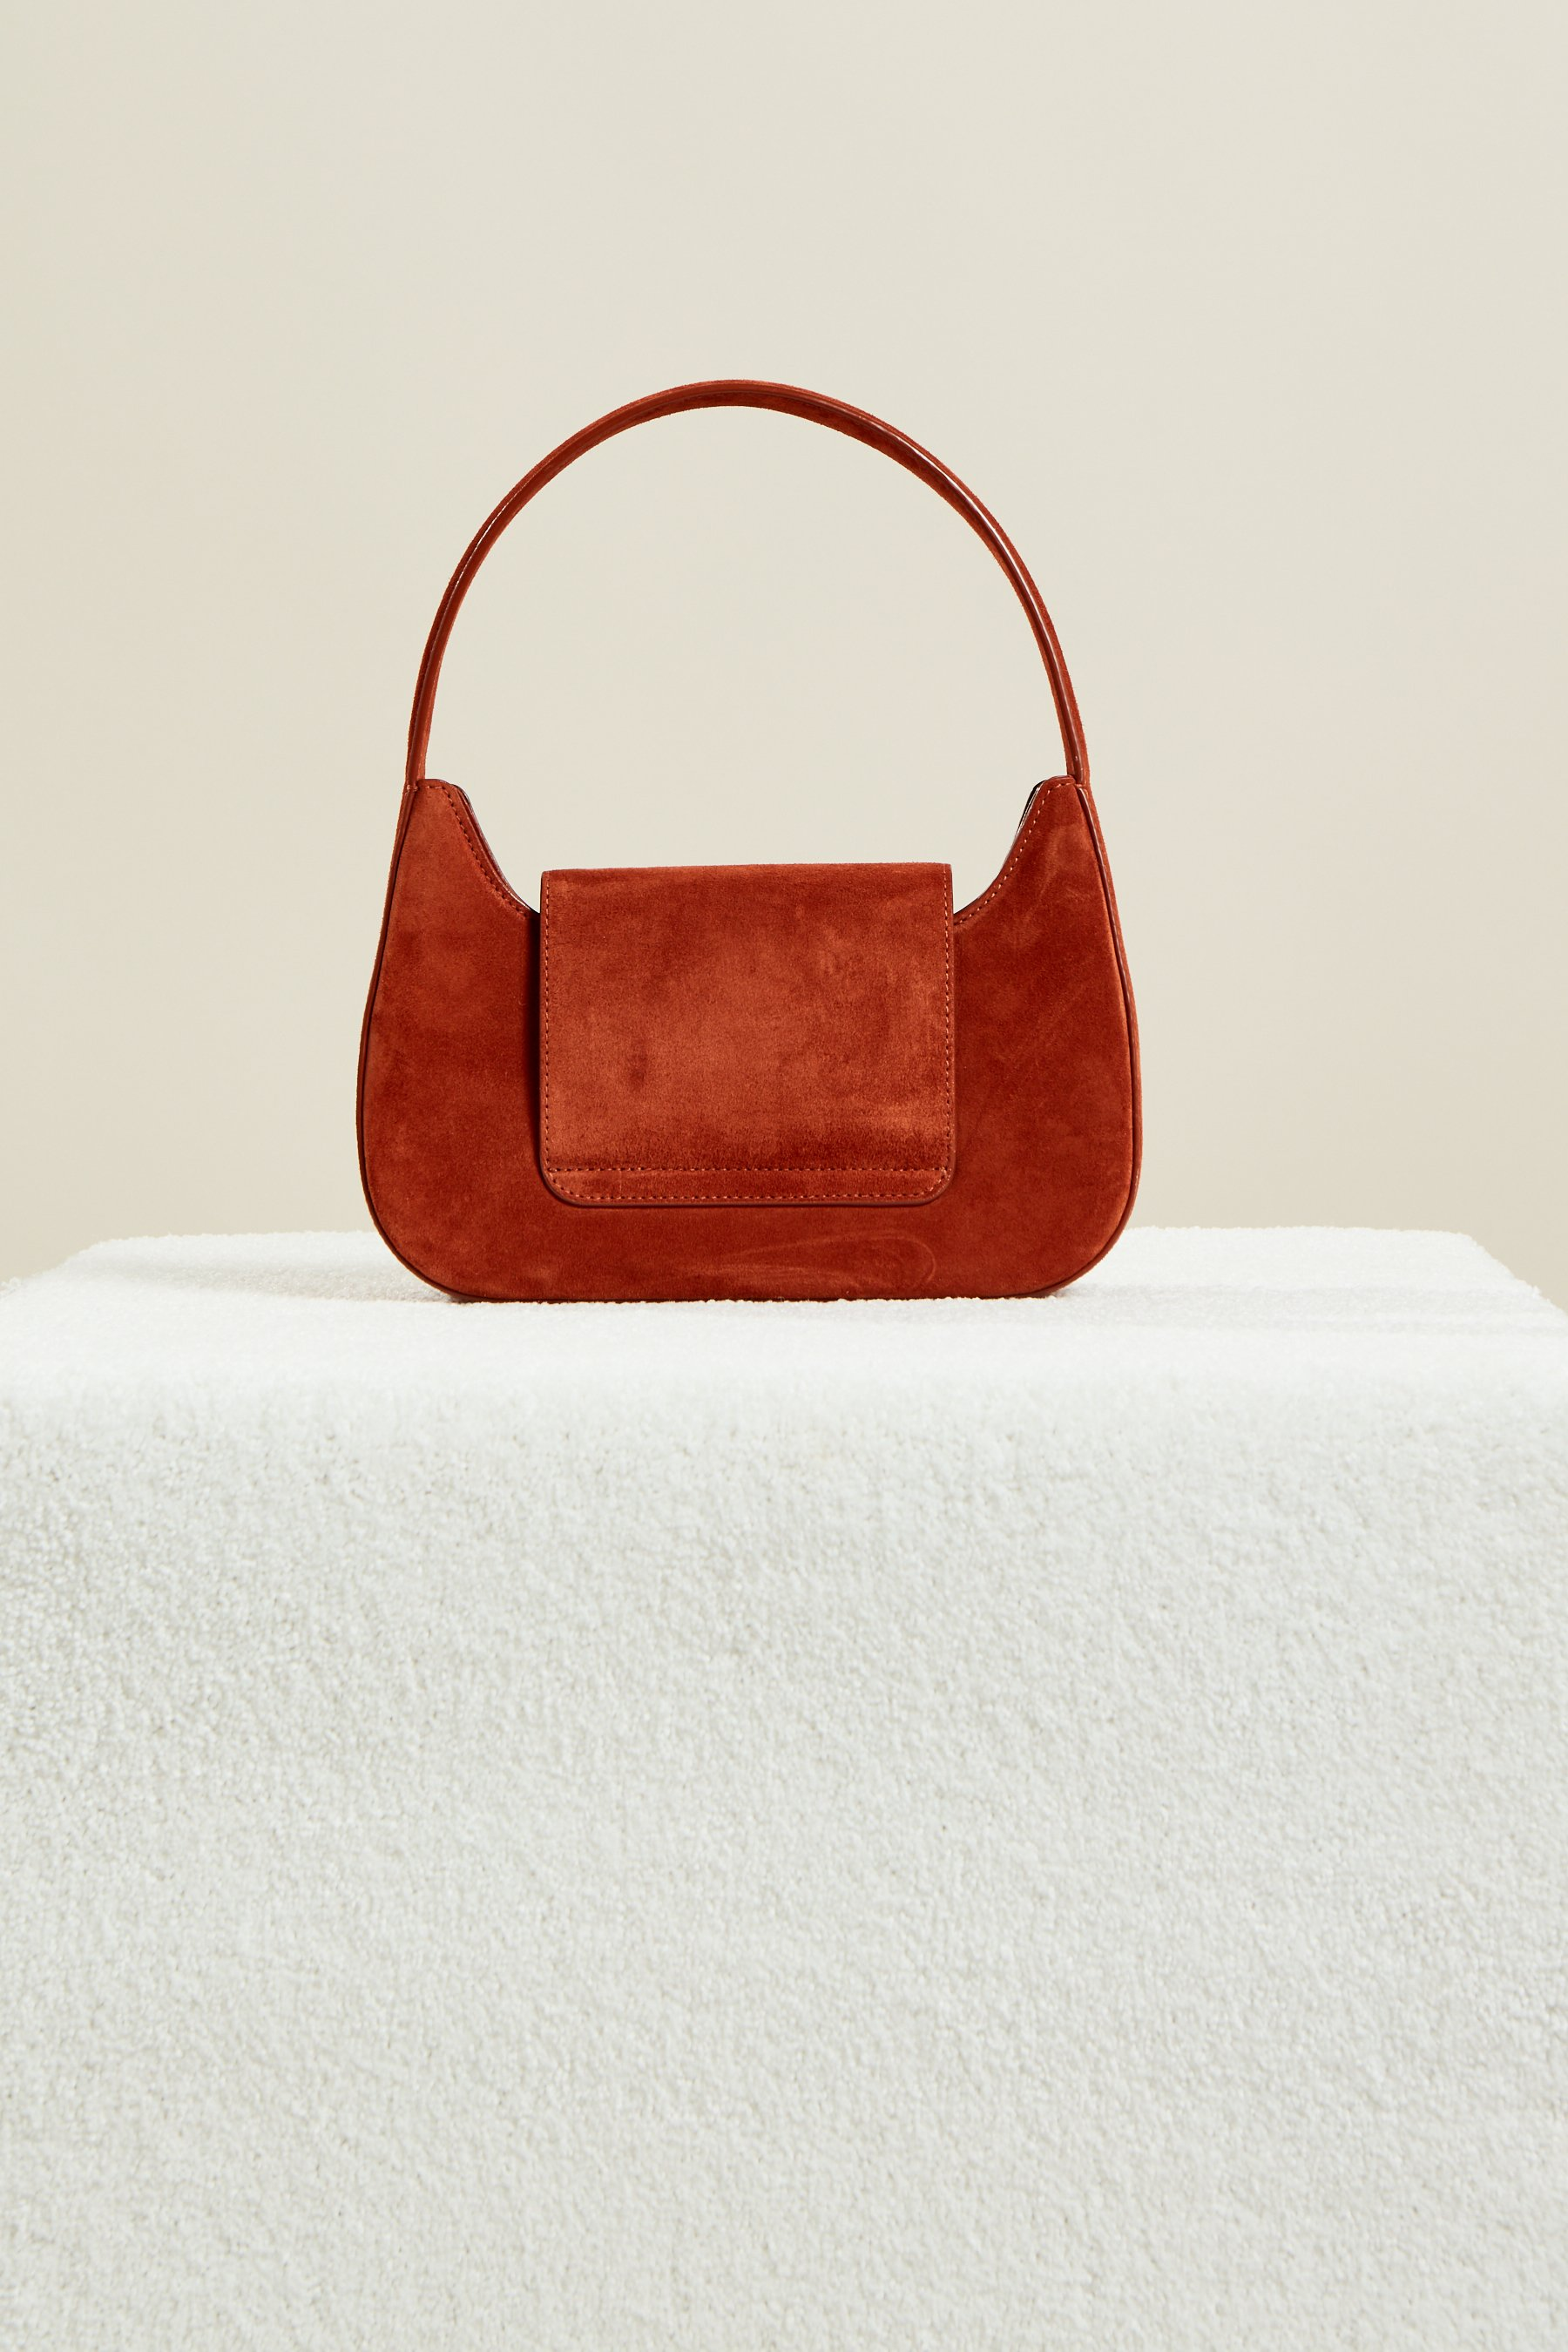 Retro Bag in Rust Suede by Simon Miller - 3